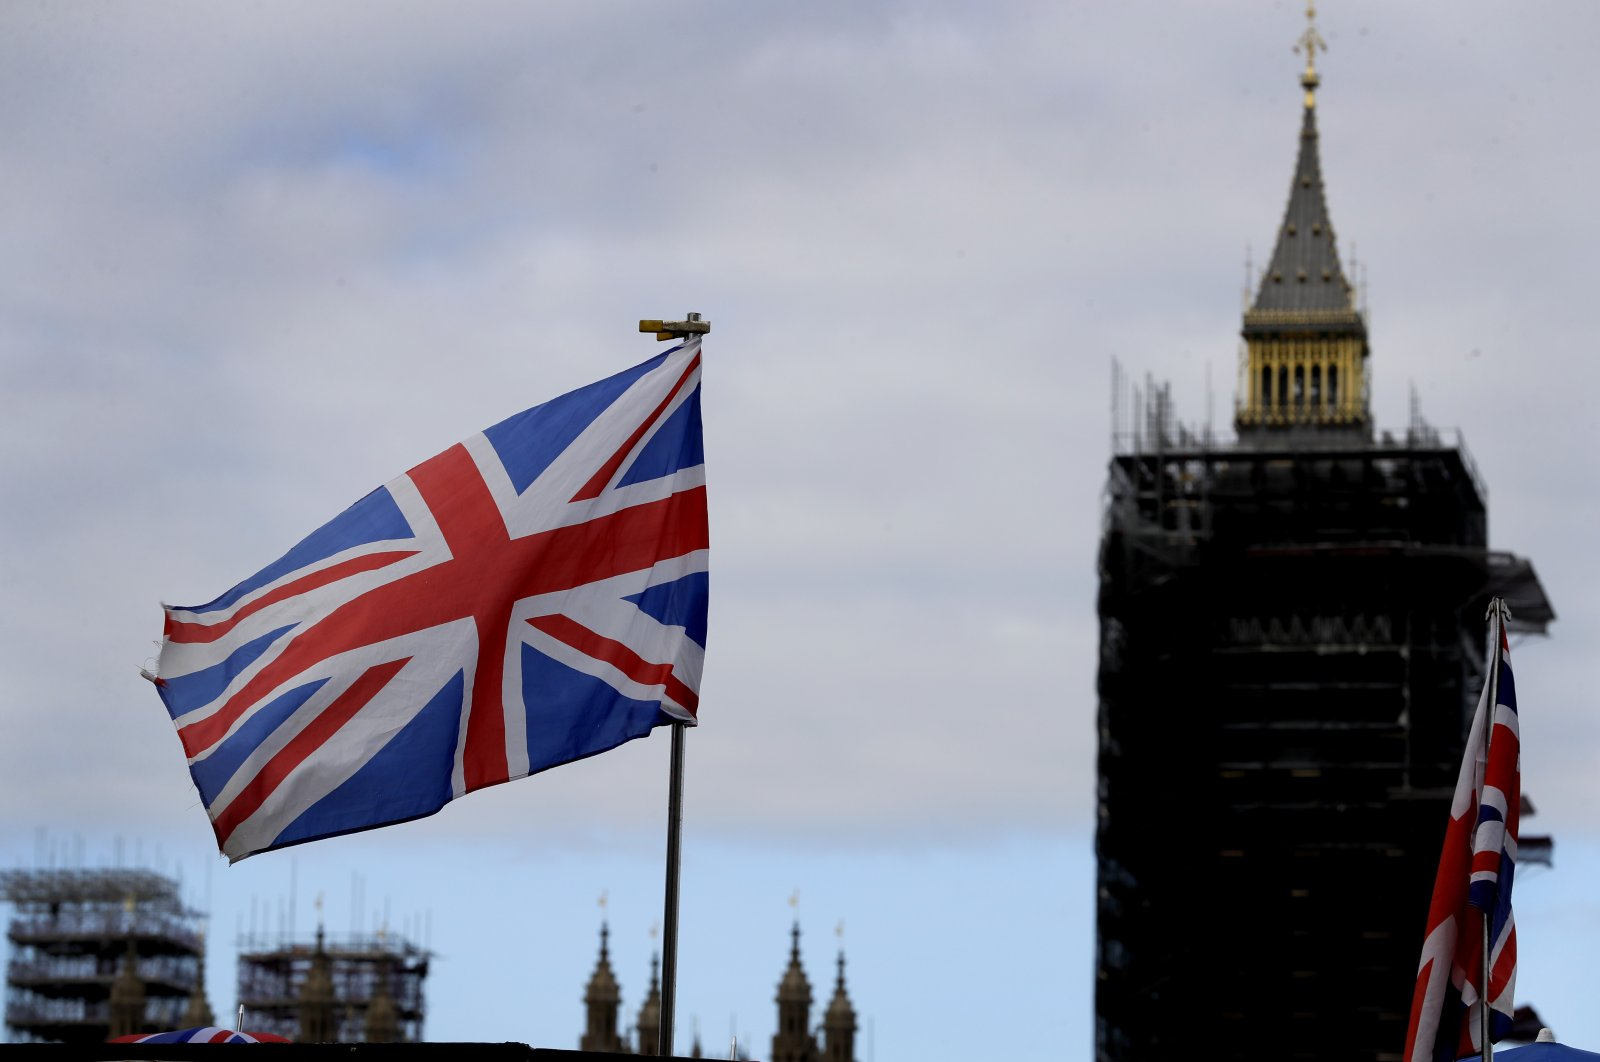 The flag flies above a souvenir stand in front of Big Ben in London, the U.K., Oct. 16, 2020. (AP Photo)